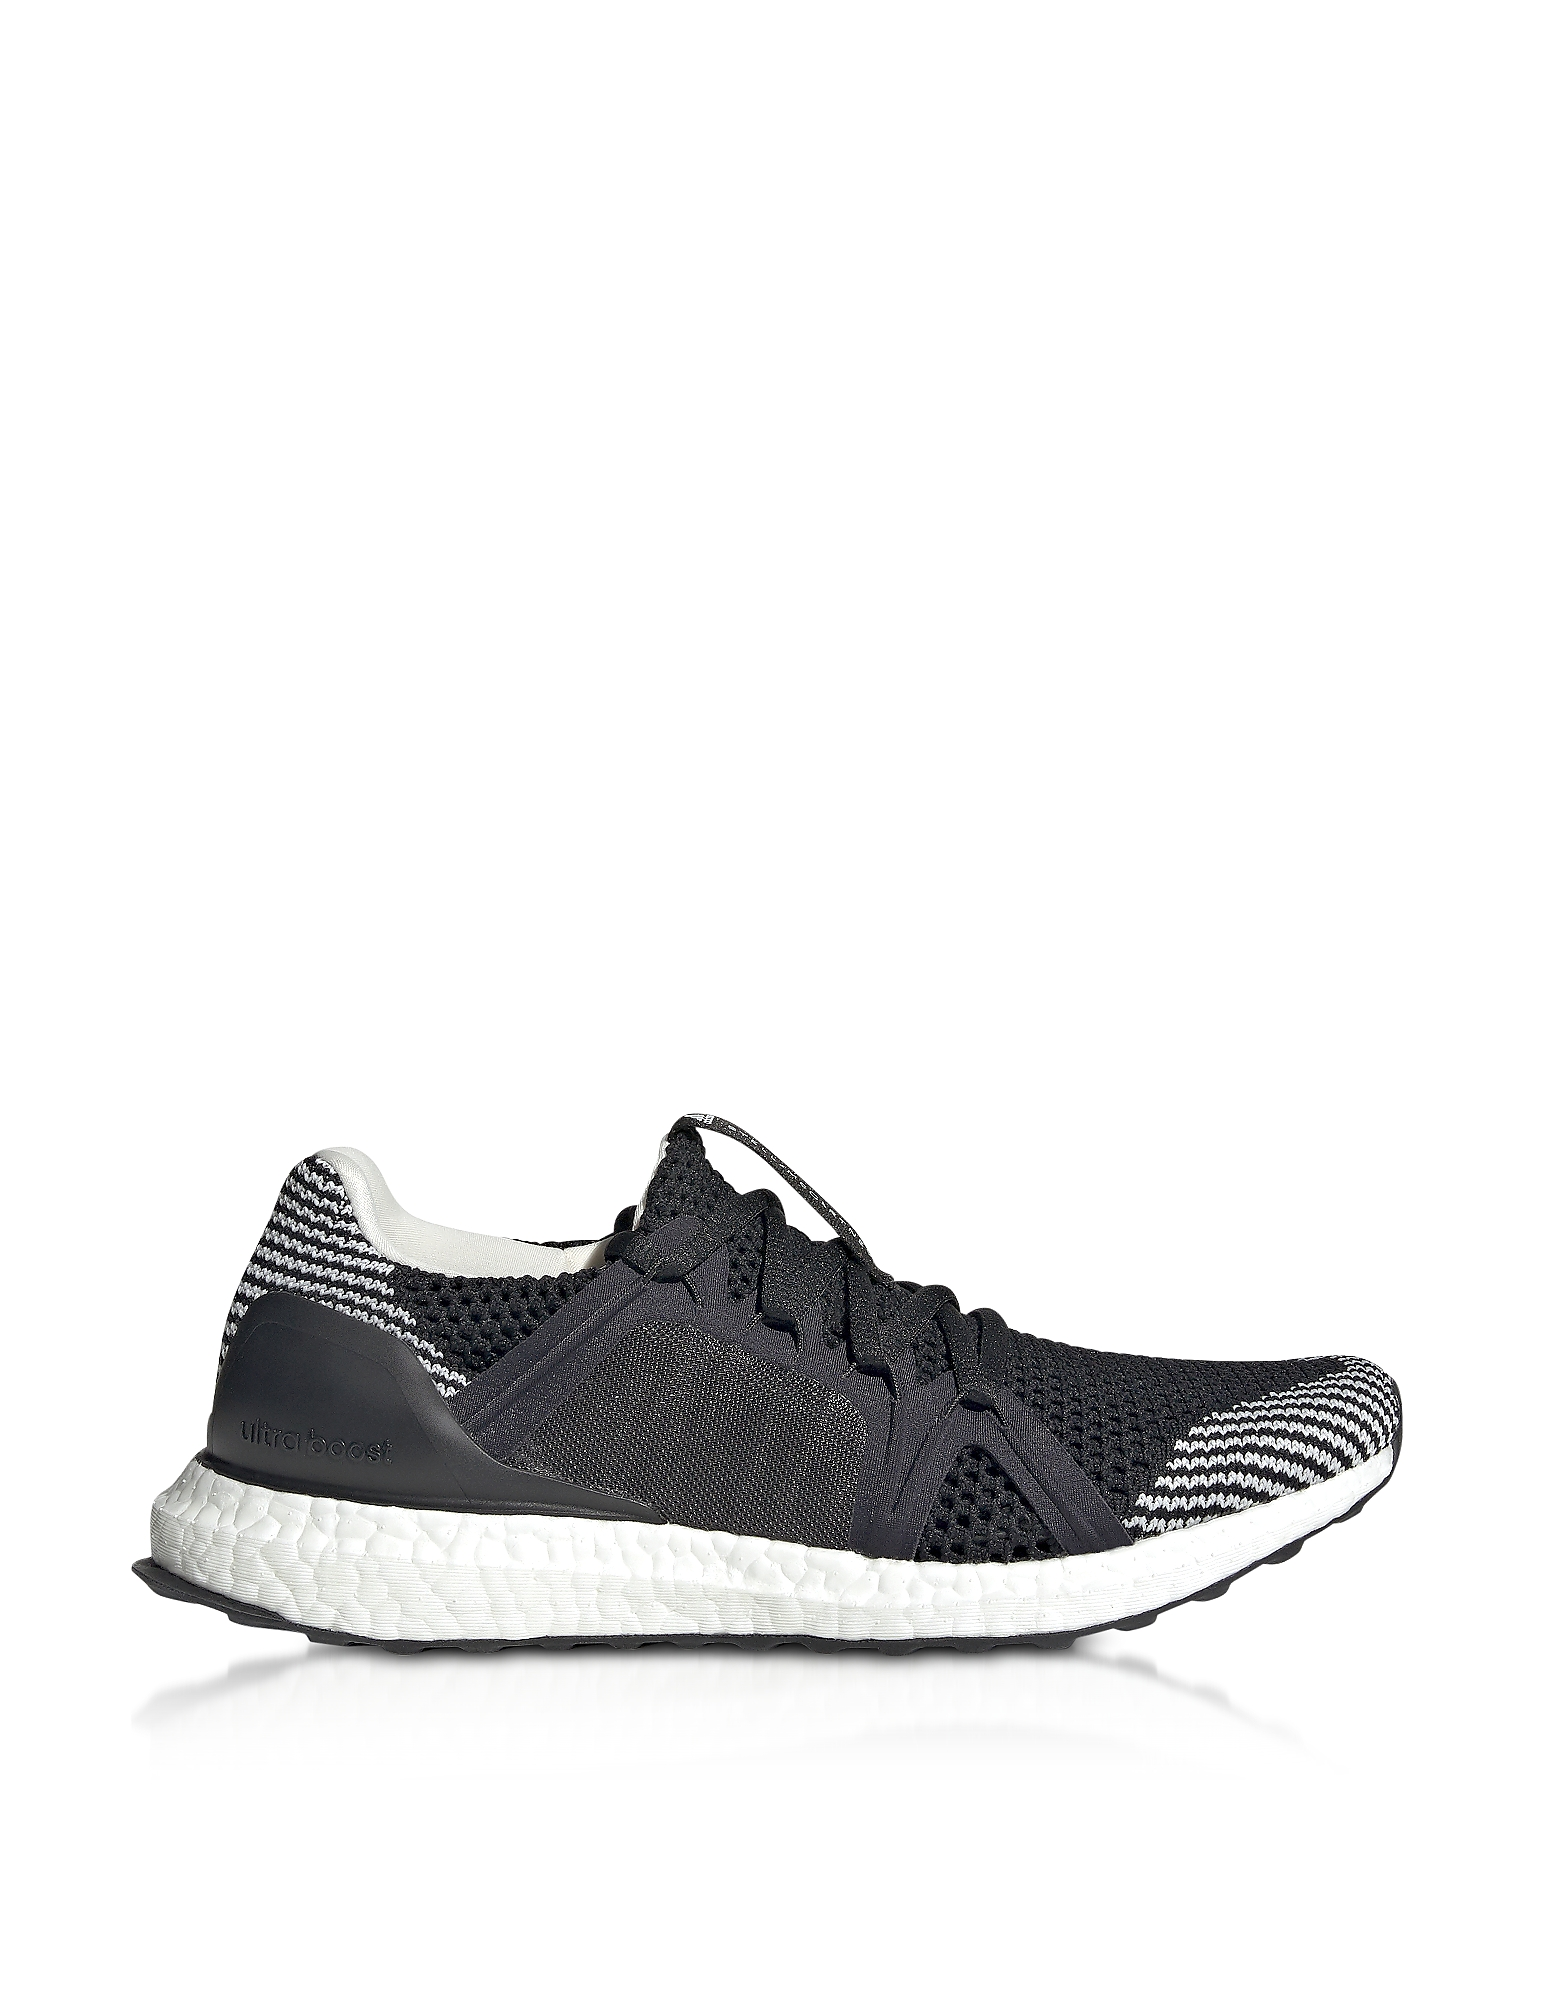 Ultraboost S Black and White Running Sneakers